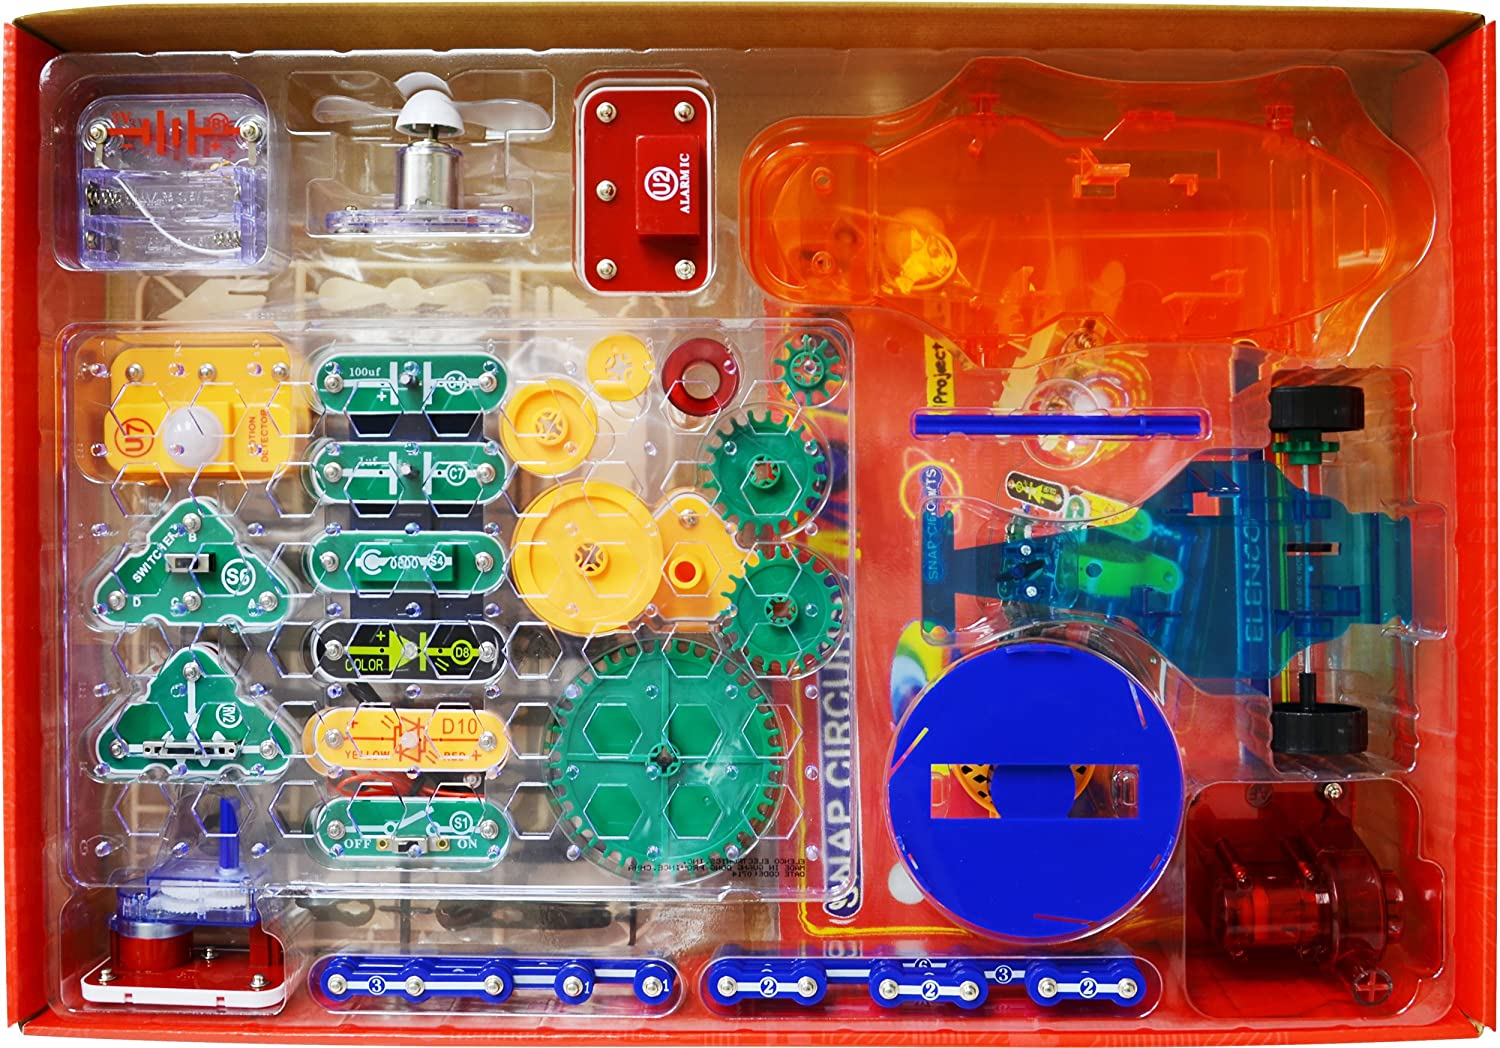 Snap Circuits Motion Electronics Discovery Kit Toys Games Replacement Motor Top For